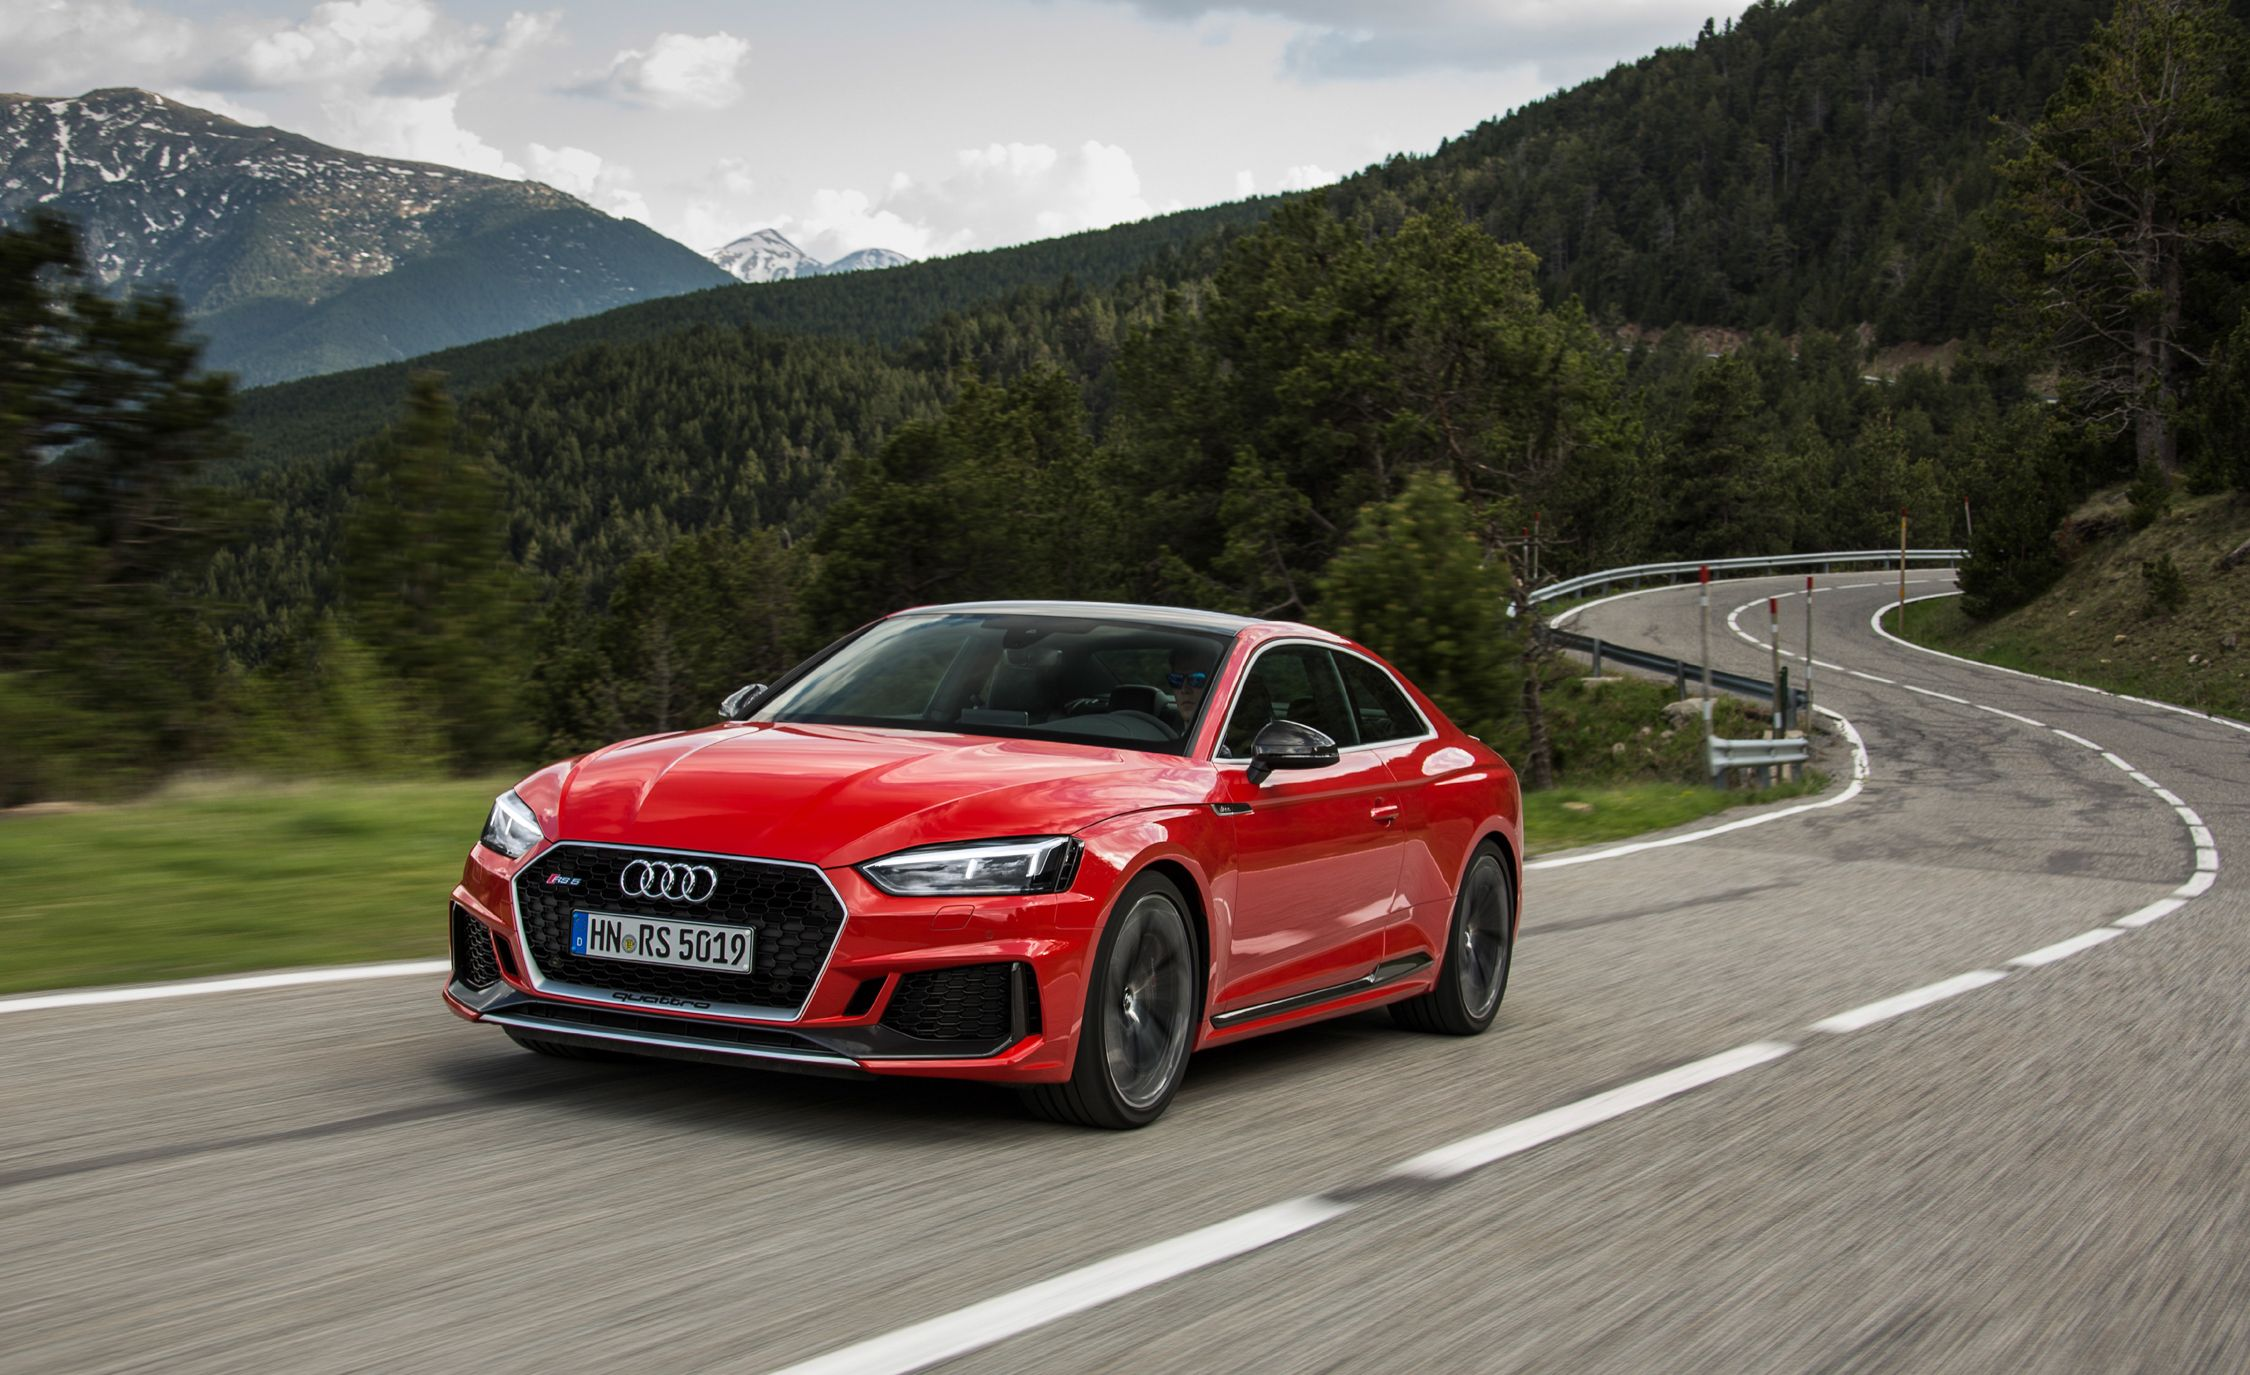 אדיר 2019 Audi RS5 Reviews | Audi RS5 Price, Photos, and Specs | Car WQ-14